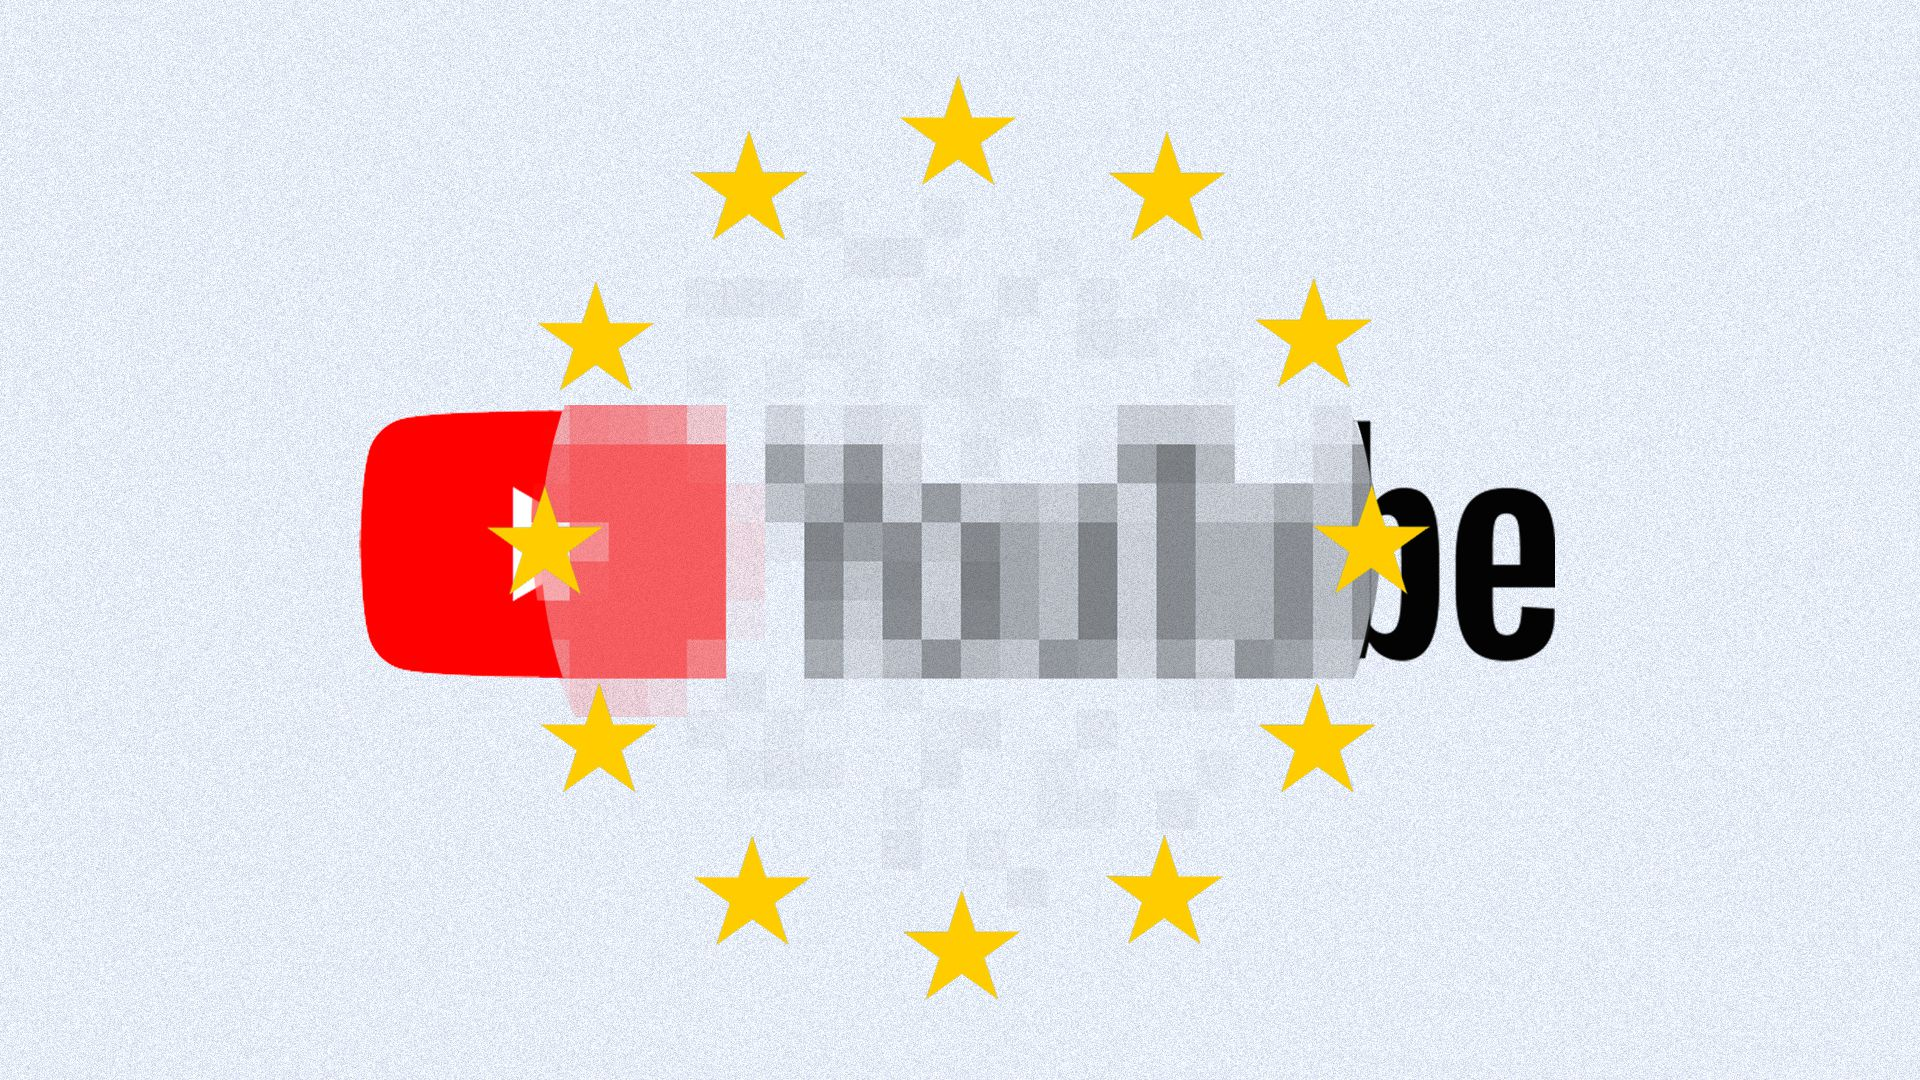 Illustration of pixelated Youtube logo inside EU flag